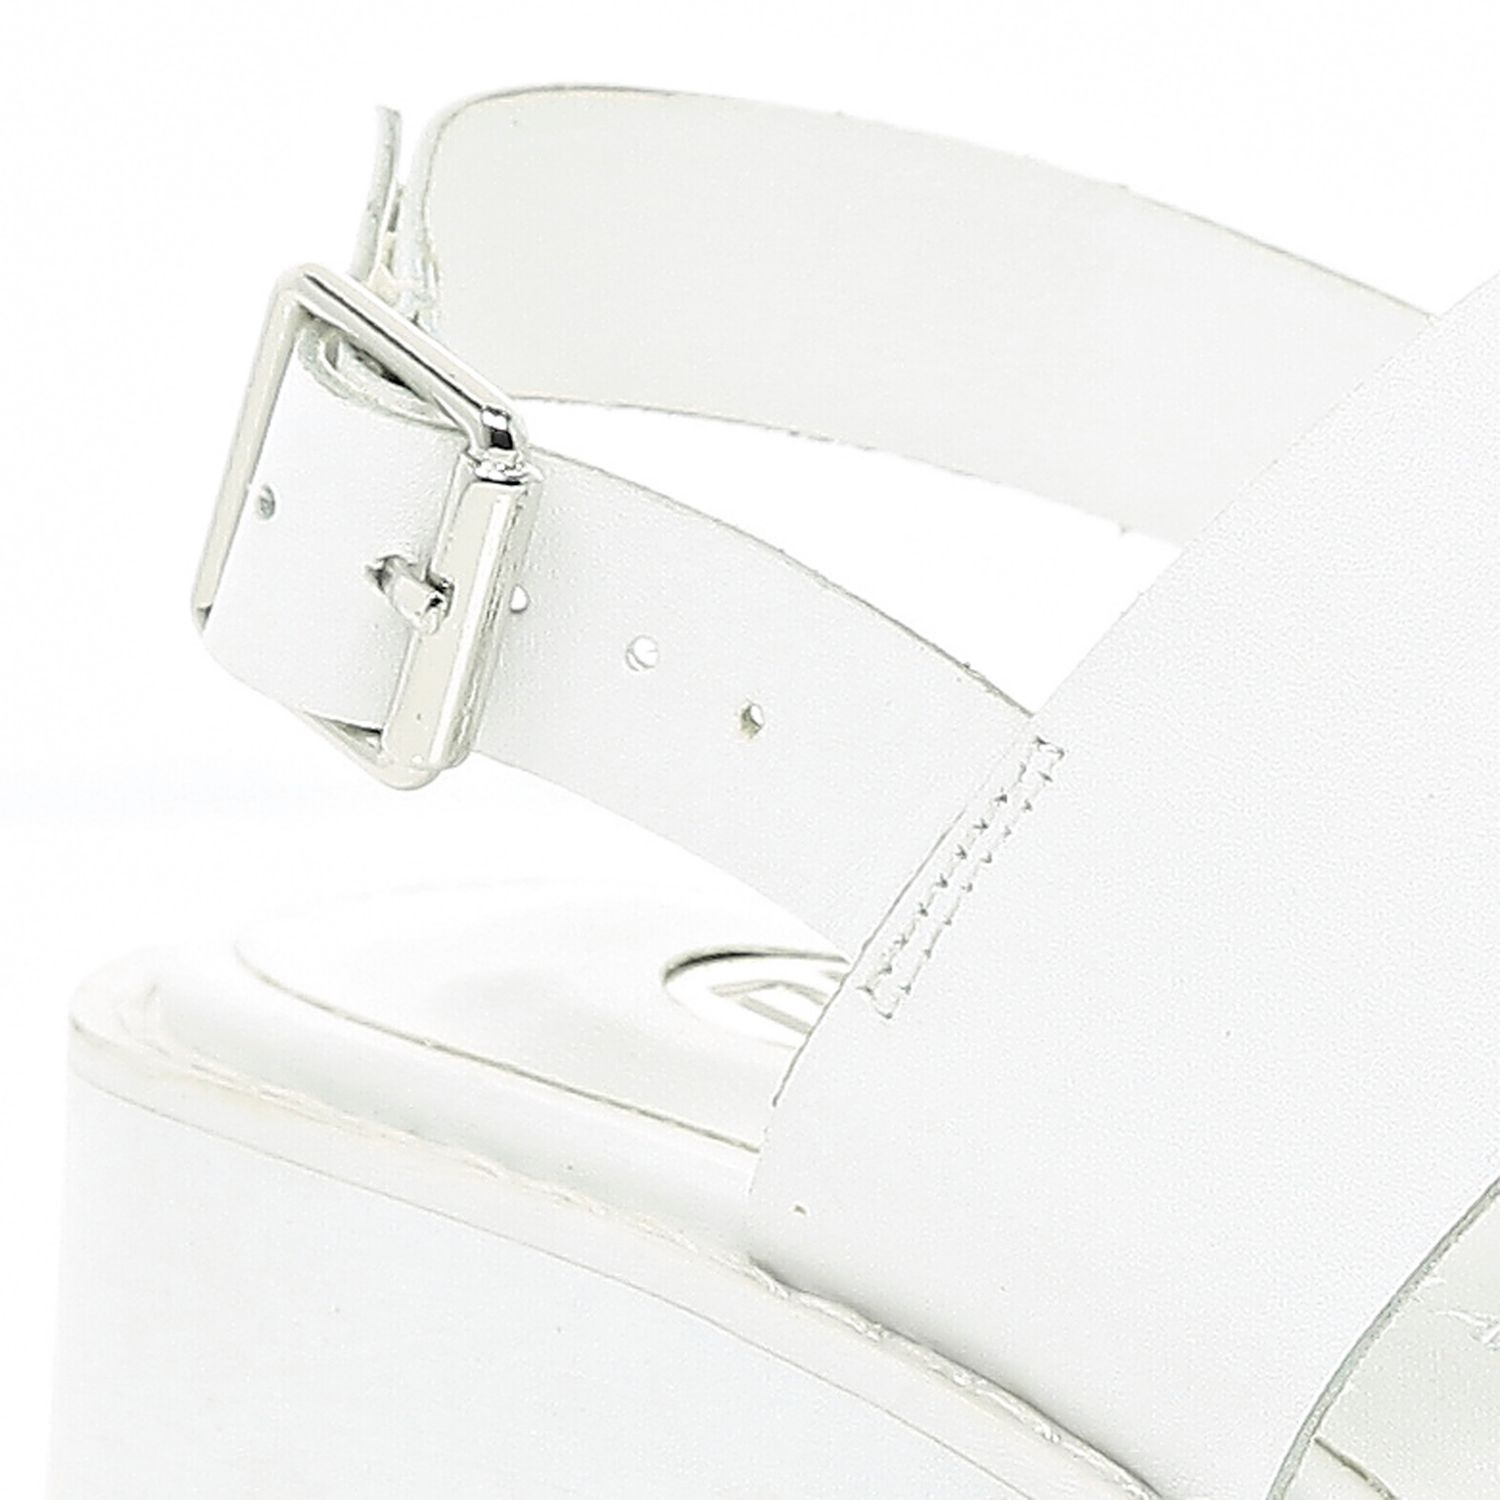 53d36b61d45 River Island White Block Heel Cleated Sole Sandals in White - Lyst